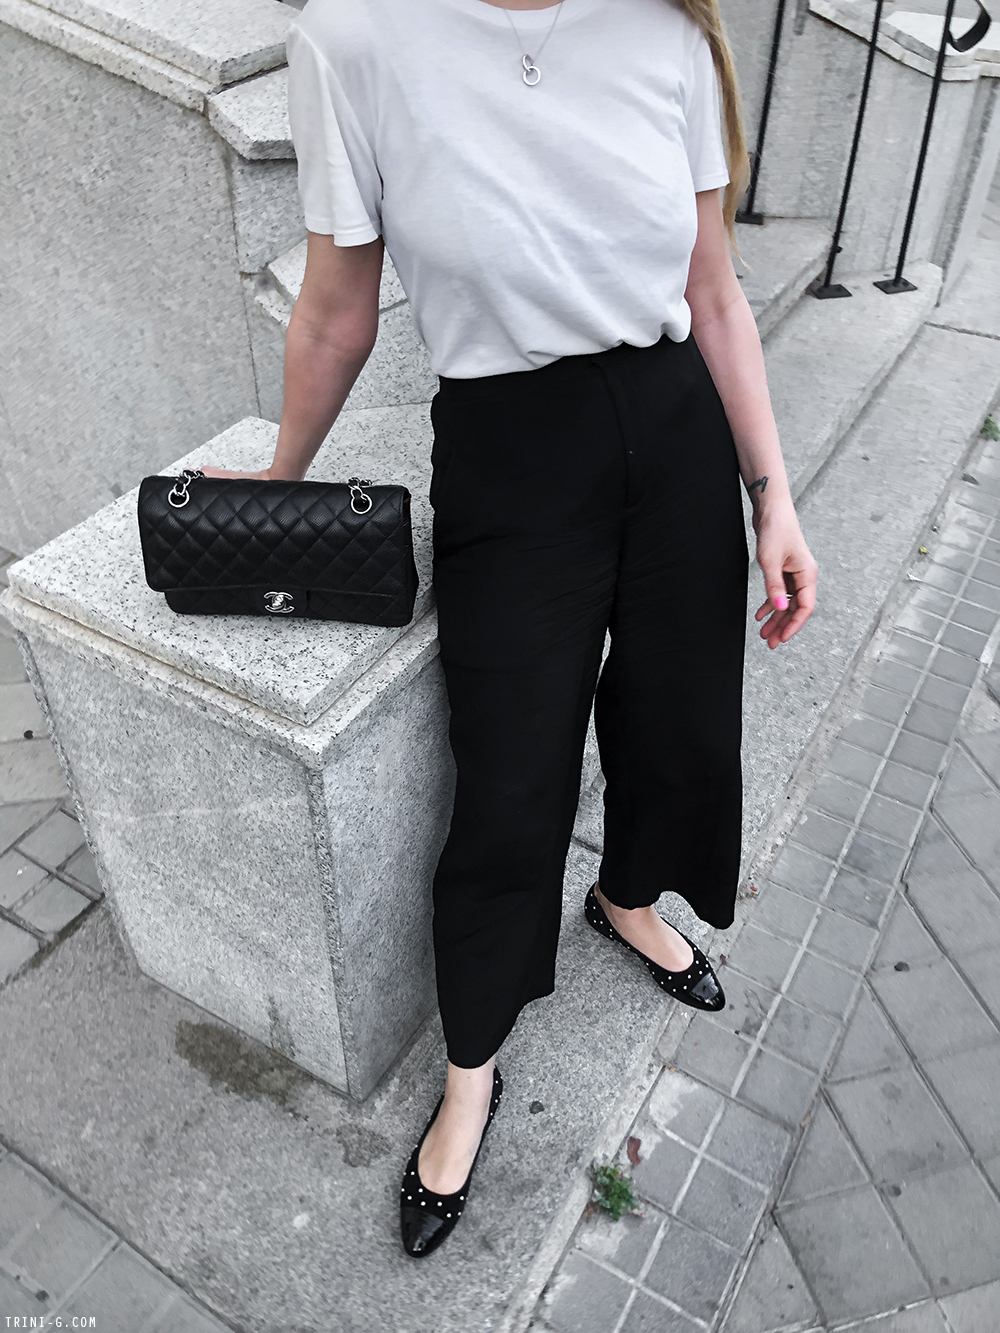 Trini | The Row t-shirt Theyskens Theory pants